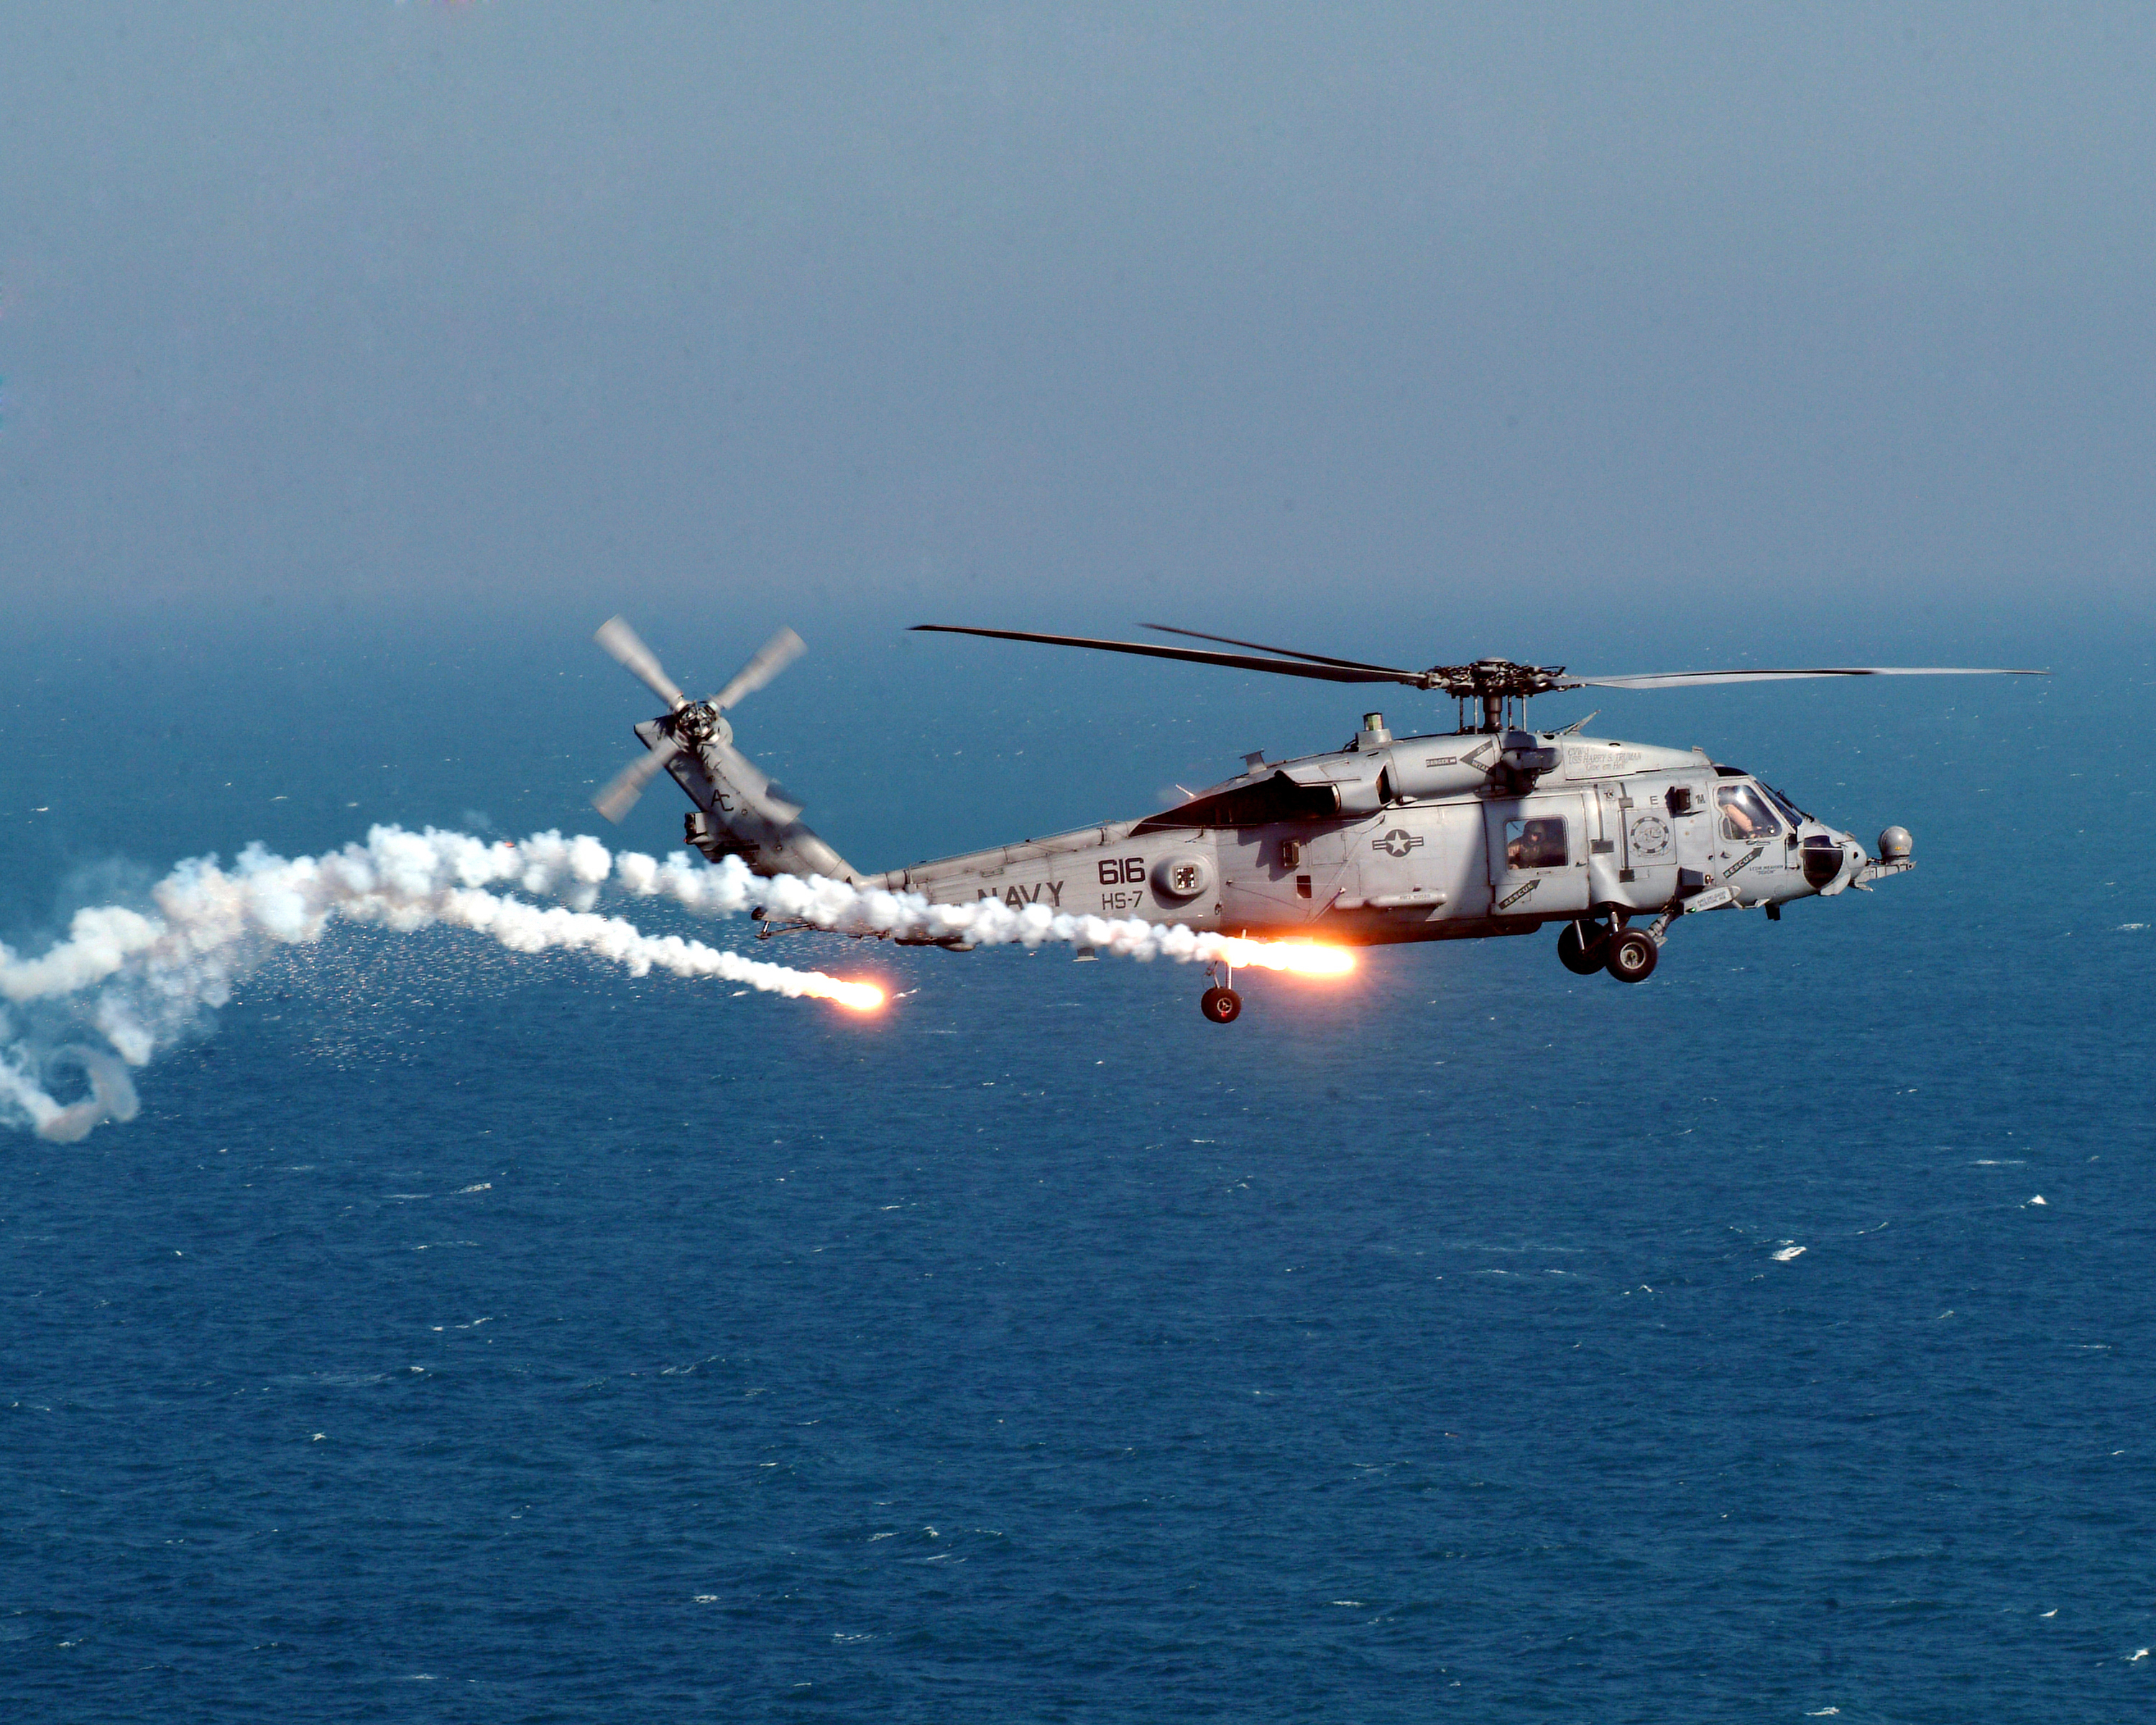 us navy seahawk helicopter with File Us Navy 041221 N 5067k 056 An Hh 60h Seahawk Assigned To The The Dusty Dogs Of Helicopter Anti Submarine Squadron Seven  Hs 7   Test Dispense Flares And Chaff From The On Board An Aar 47 System on Mq 8 Fire Scout Vtuav Program By Land Or By Sea additionally Sikorsky Sh 60 Seahawk additionally File US Navy 050101 N 6817C 028 Helicopters depart USS Abraham Lincoln  CVN 72  en route to Aceh  Sumatra  Indonesia in addition Sikorsky Sh 60 Sea Hawk 168573 usa Us Navy 270212 large in addition Iranian Navy Boat Threatens U S Helicopter N689286.